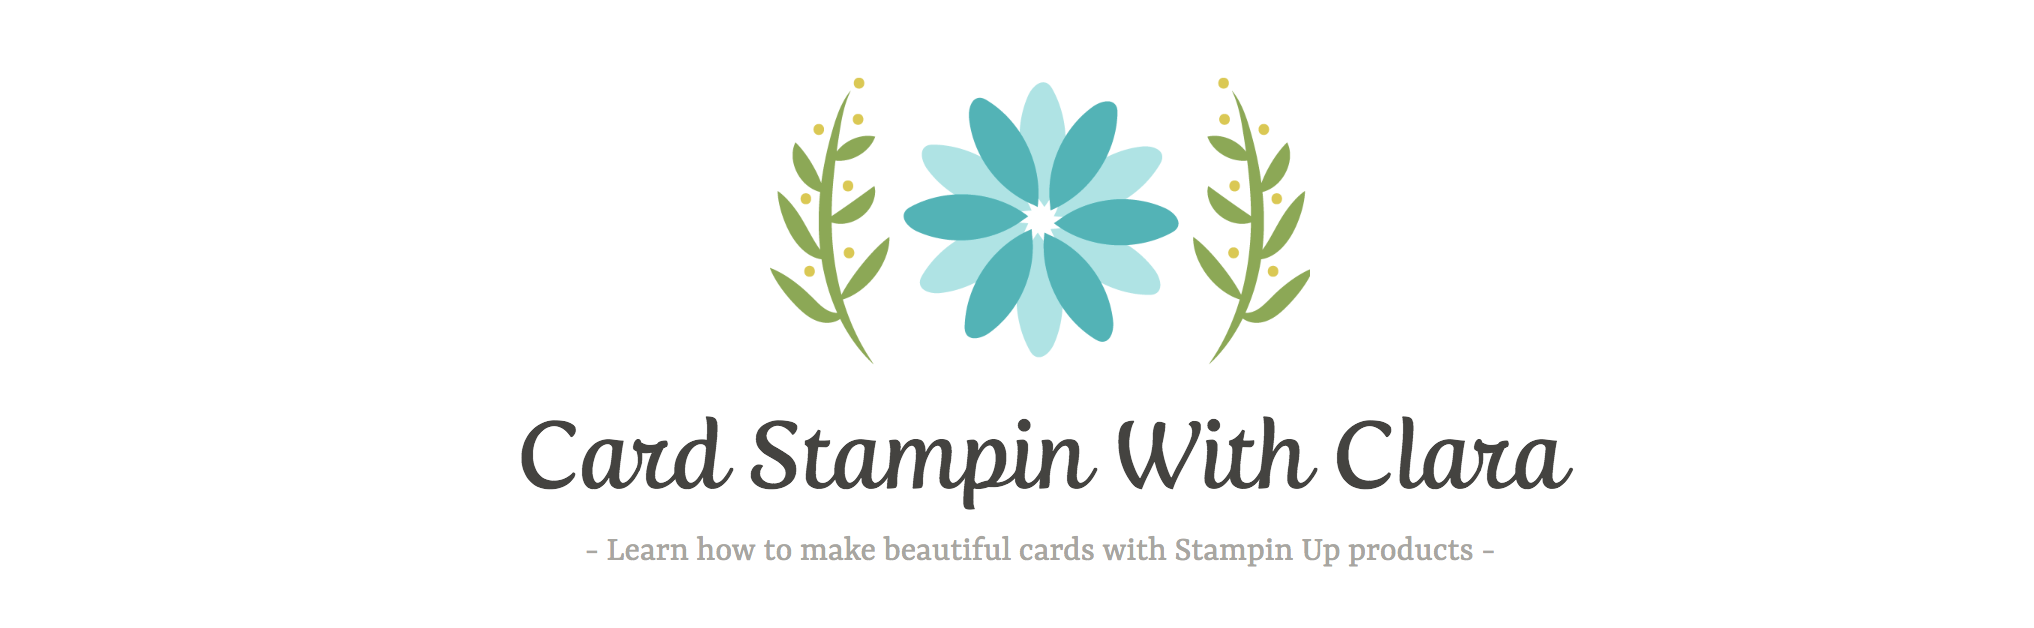 Card Stampin With Clara